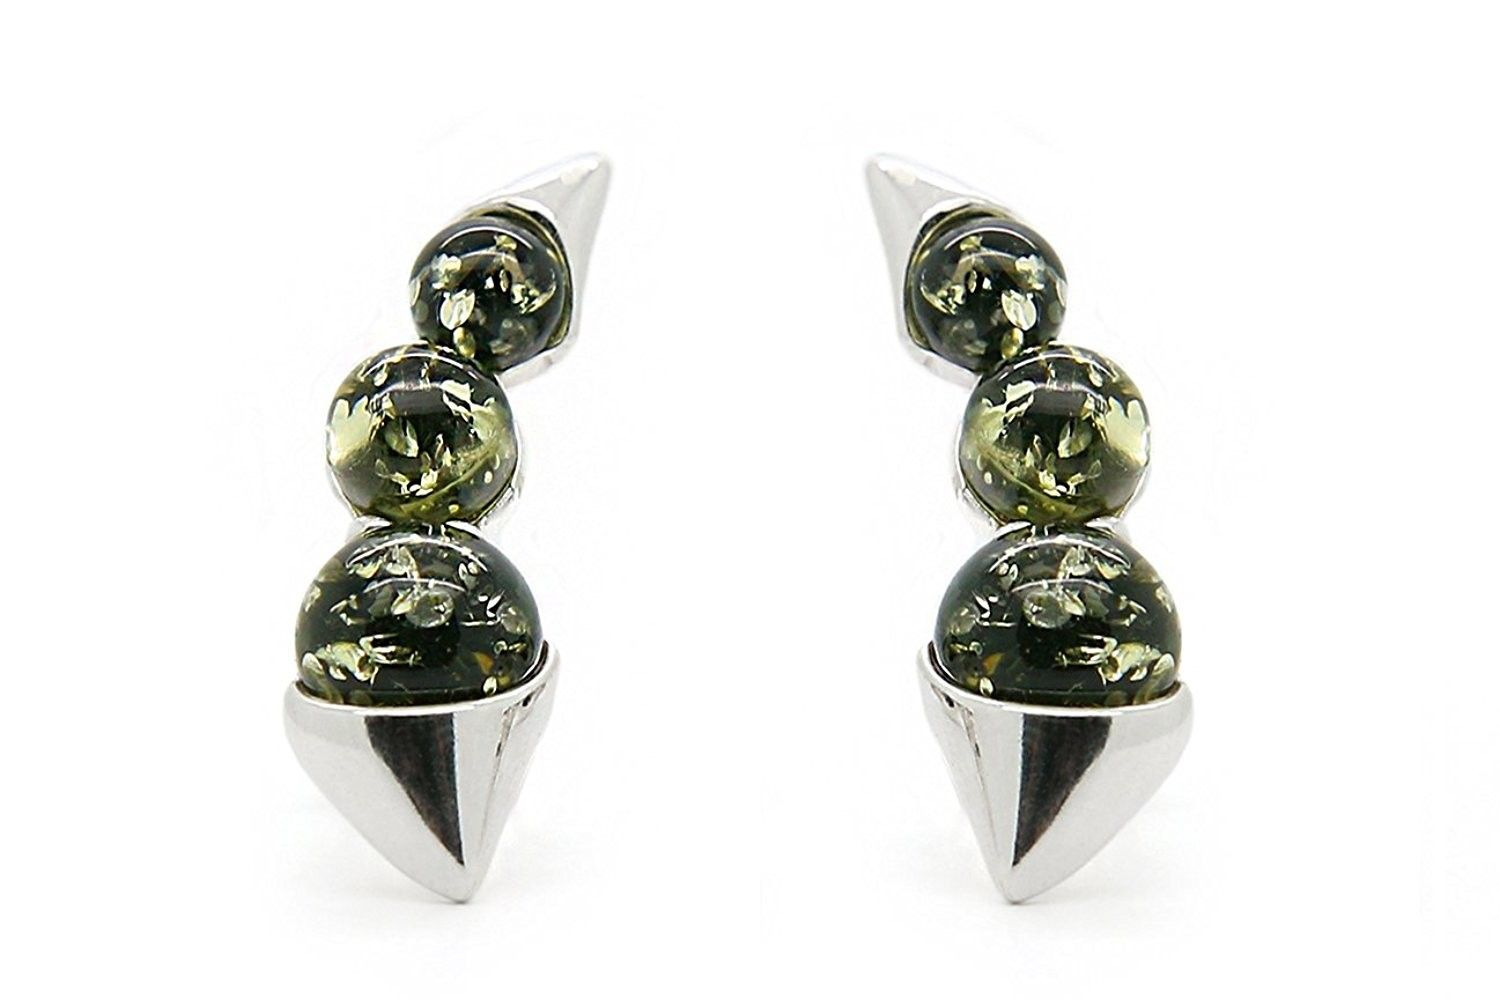 67e85a27fca7a 925 Sterling Silver Climber / Crawler Stud Earrings For Women with ...